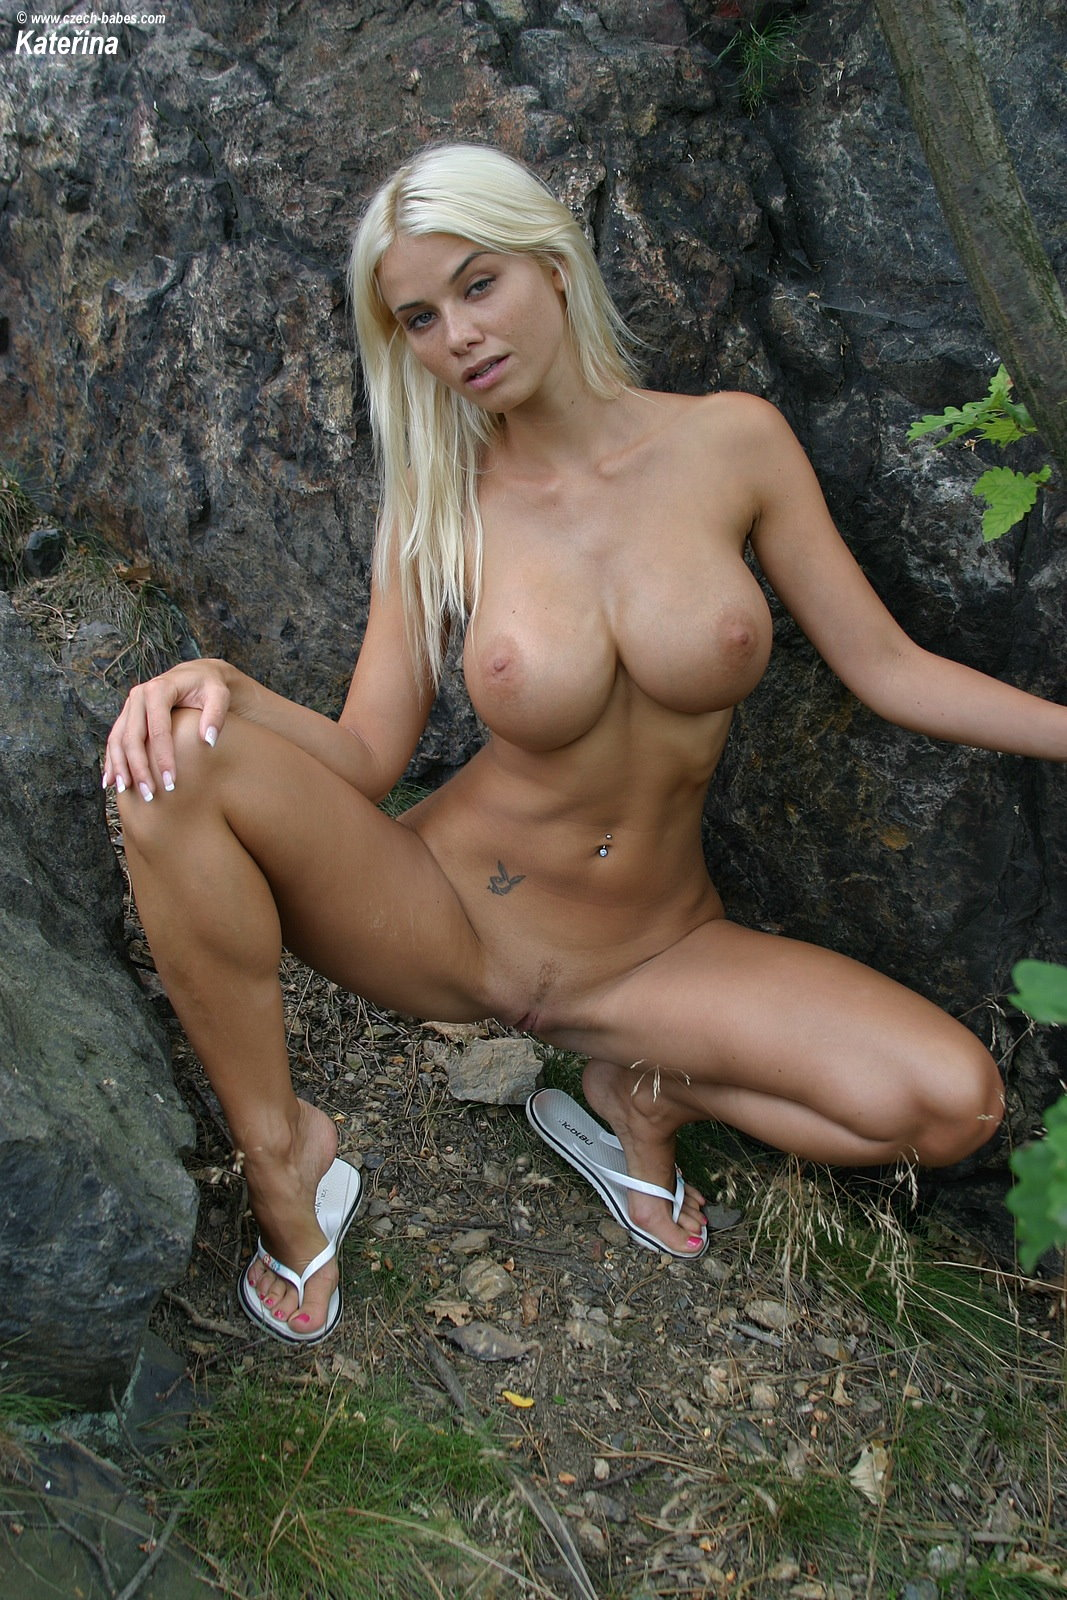 katerina-blonde-boobs-flip-flops-outdoor-naked-26